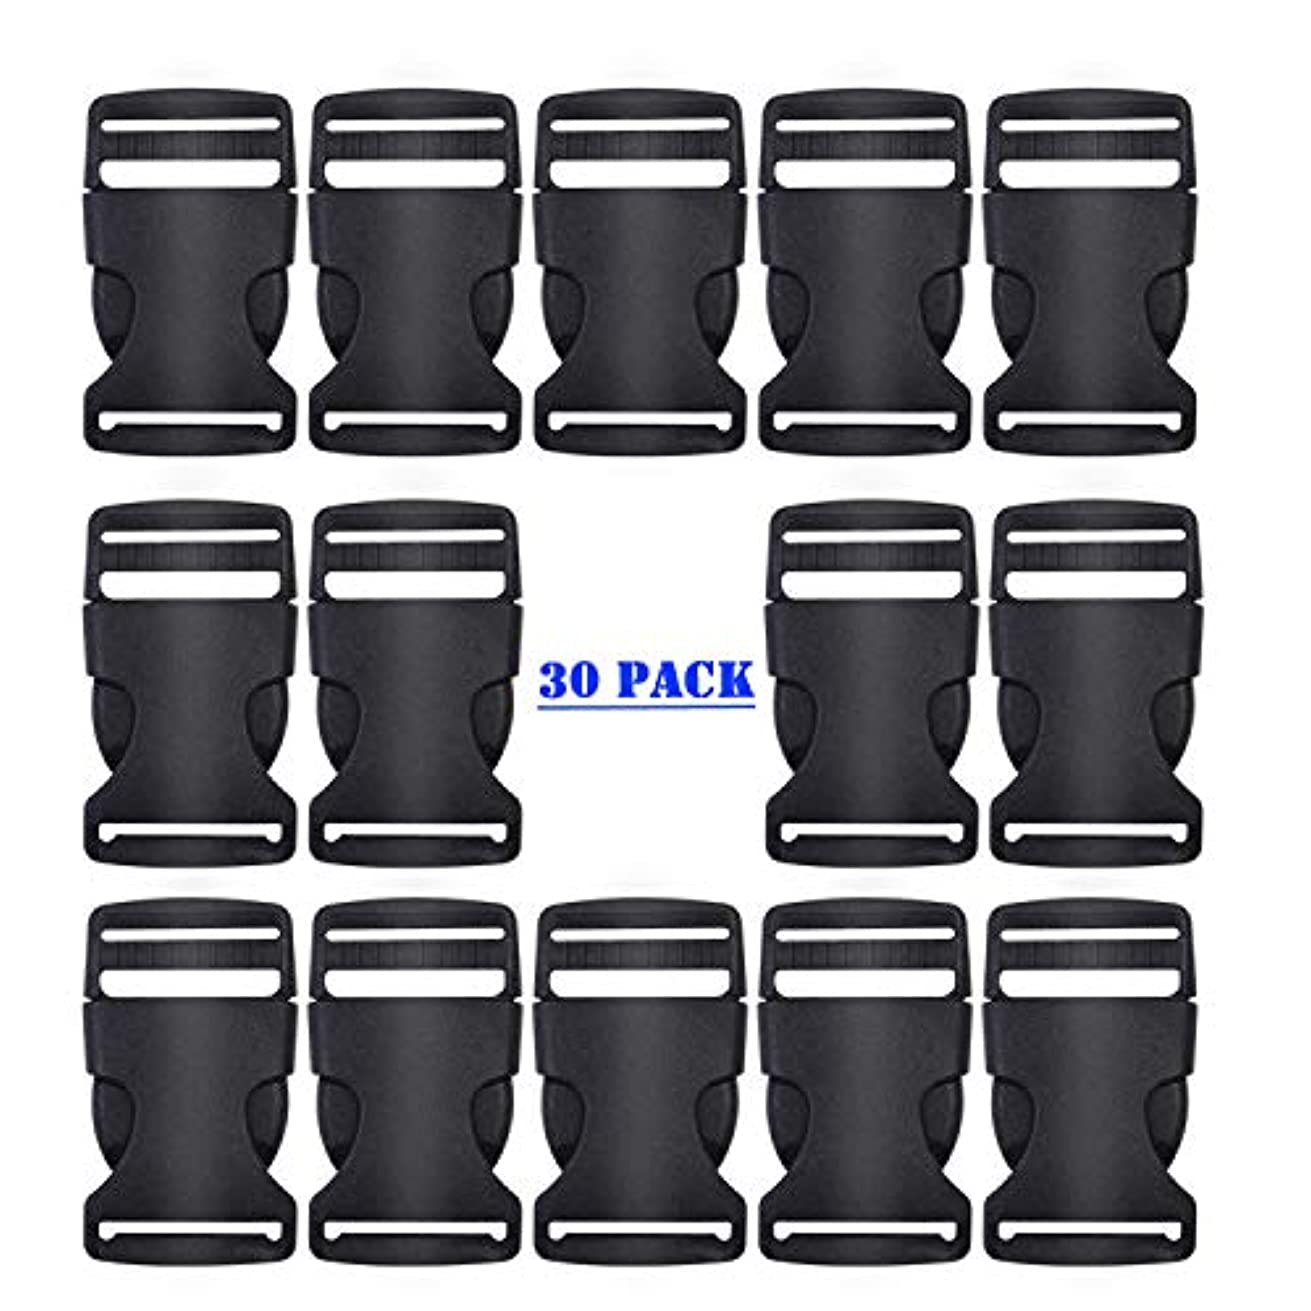 WeiMeet 30 Pieces Flat Buckles Side Release Plastic Buckles Adjustable Buckles for Luggage Backpack Straps Pet Collar